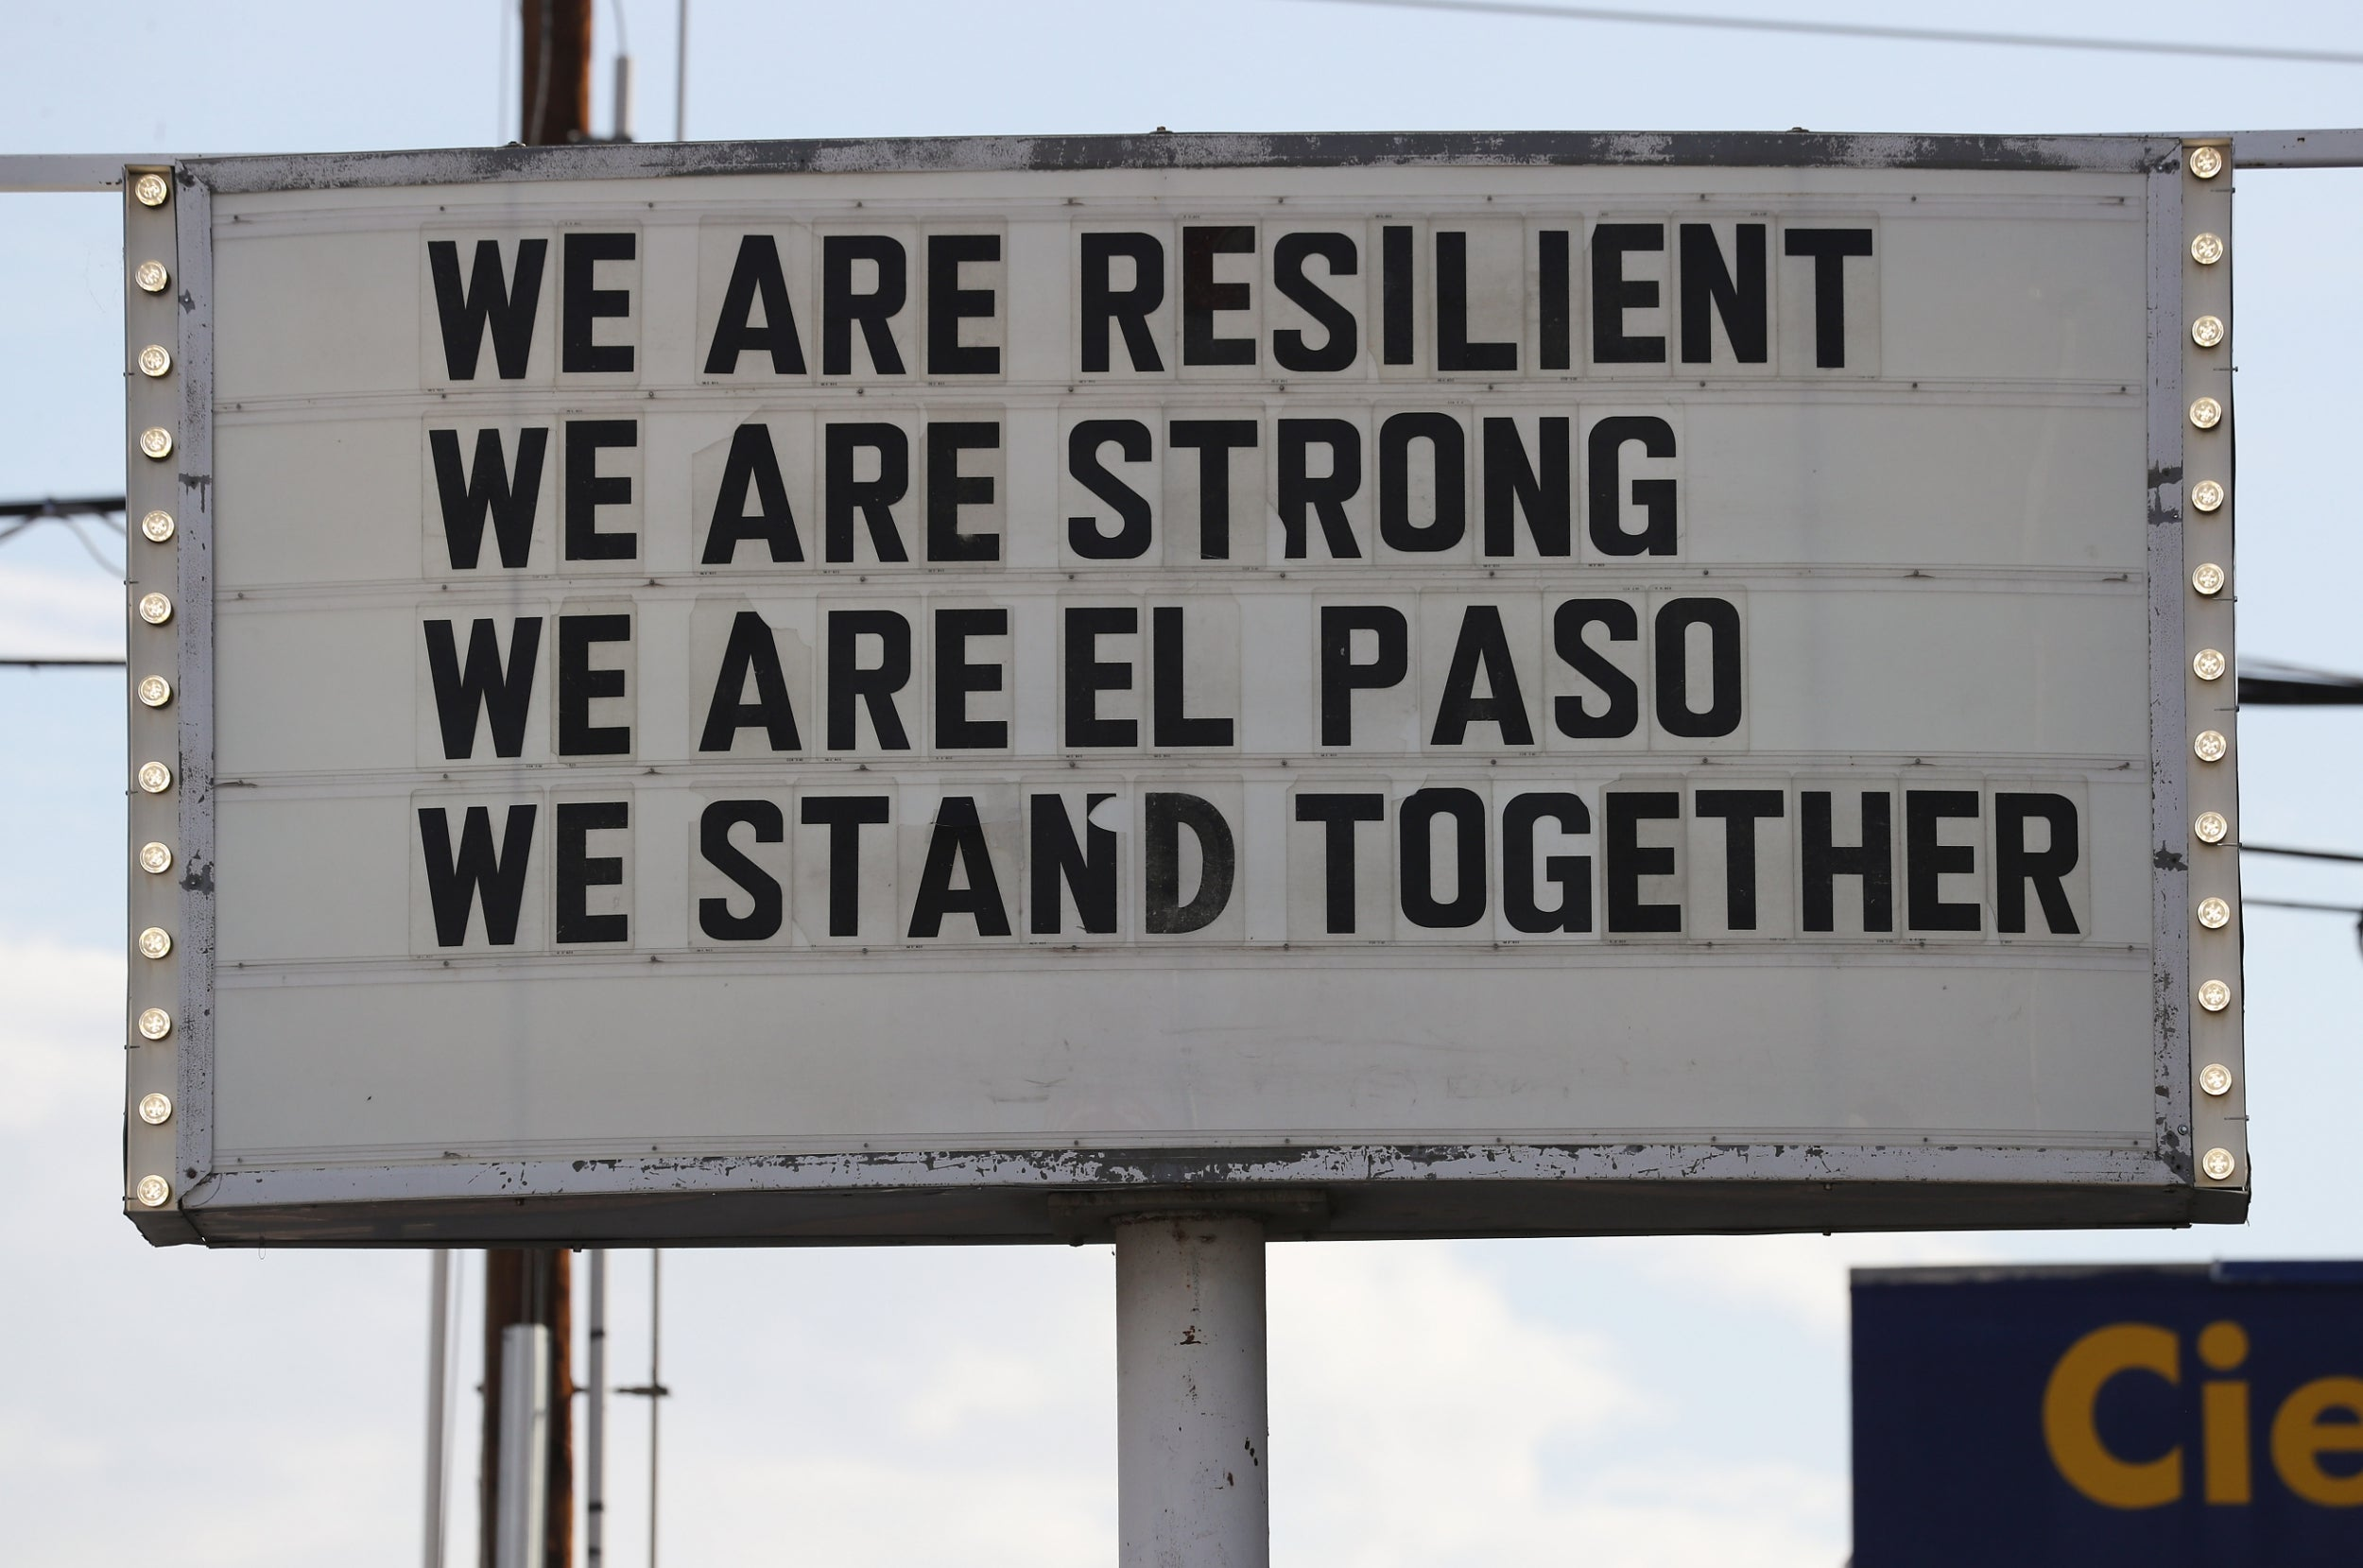 Trump El Paso rally: President attacked immigrants for 'murders